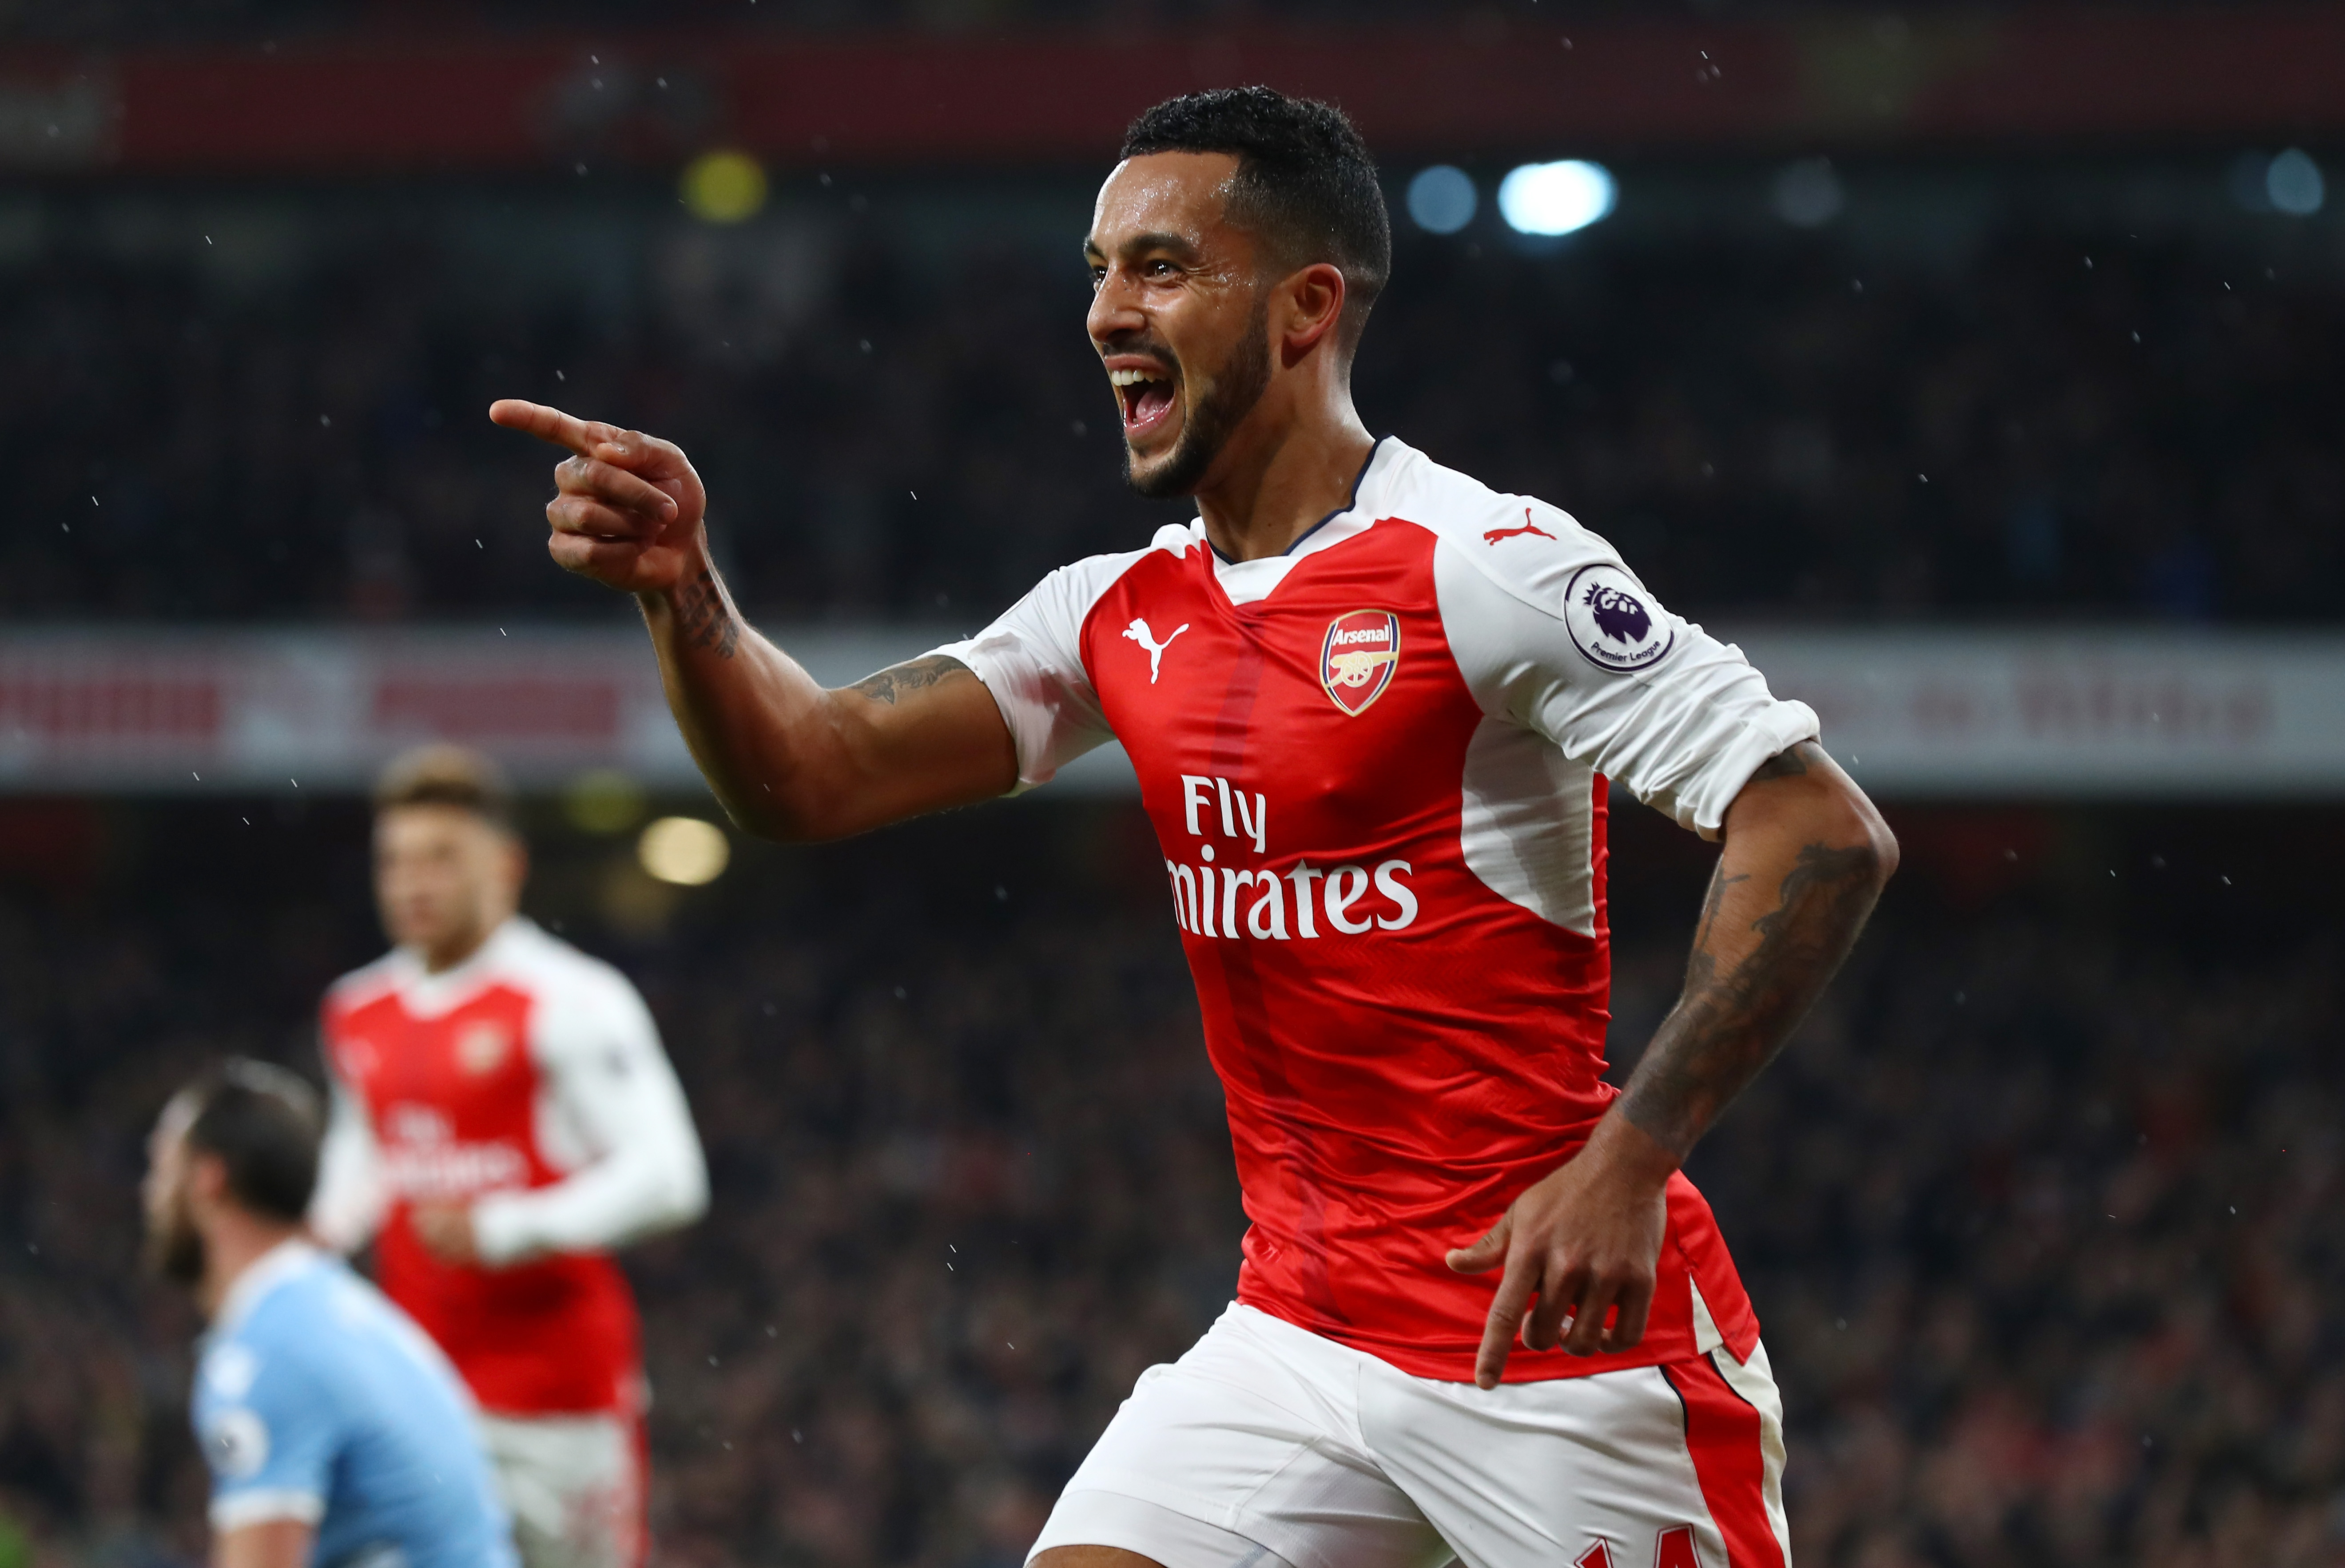 Theo Walcott says this is the best Arsenal team he's played in